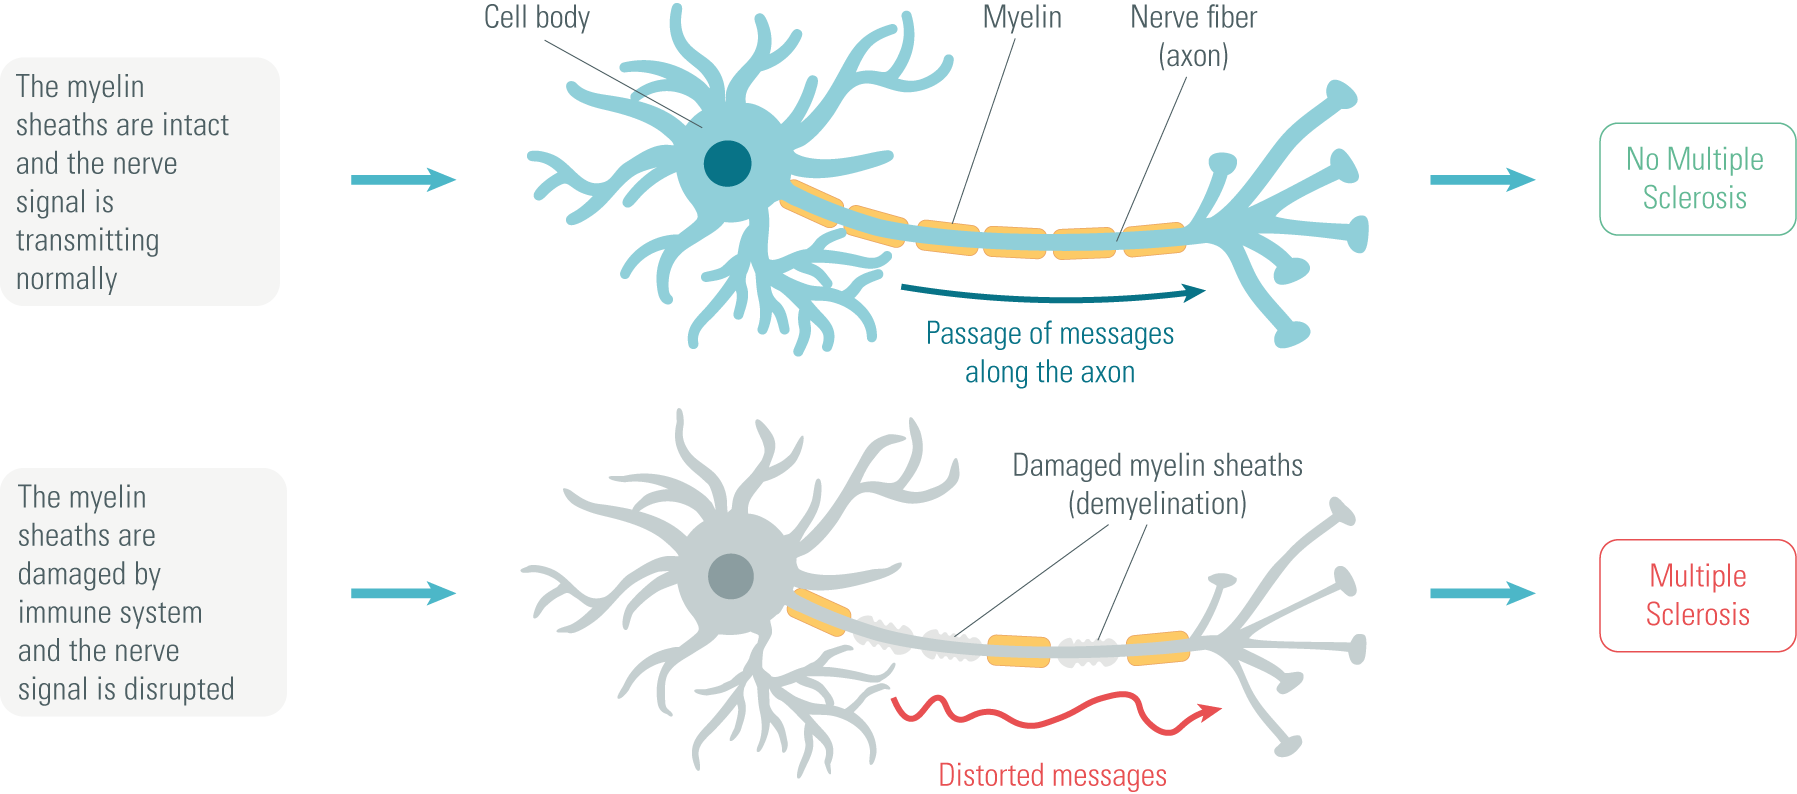 Normal Healthy Neuron and Demyelinated Neuron in Multiple Sclerosis